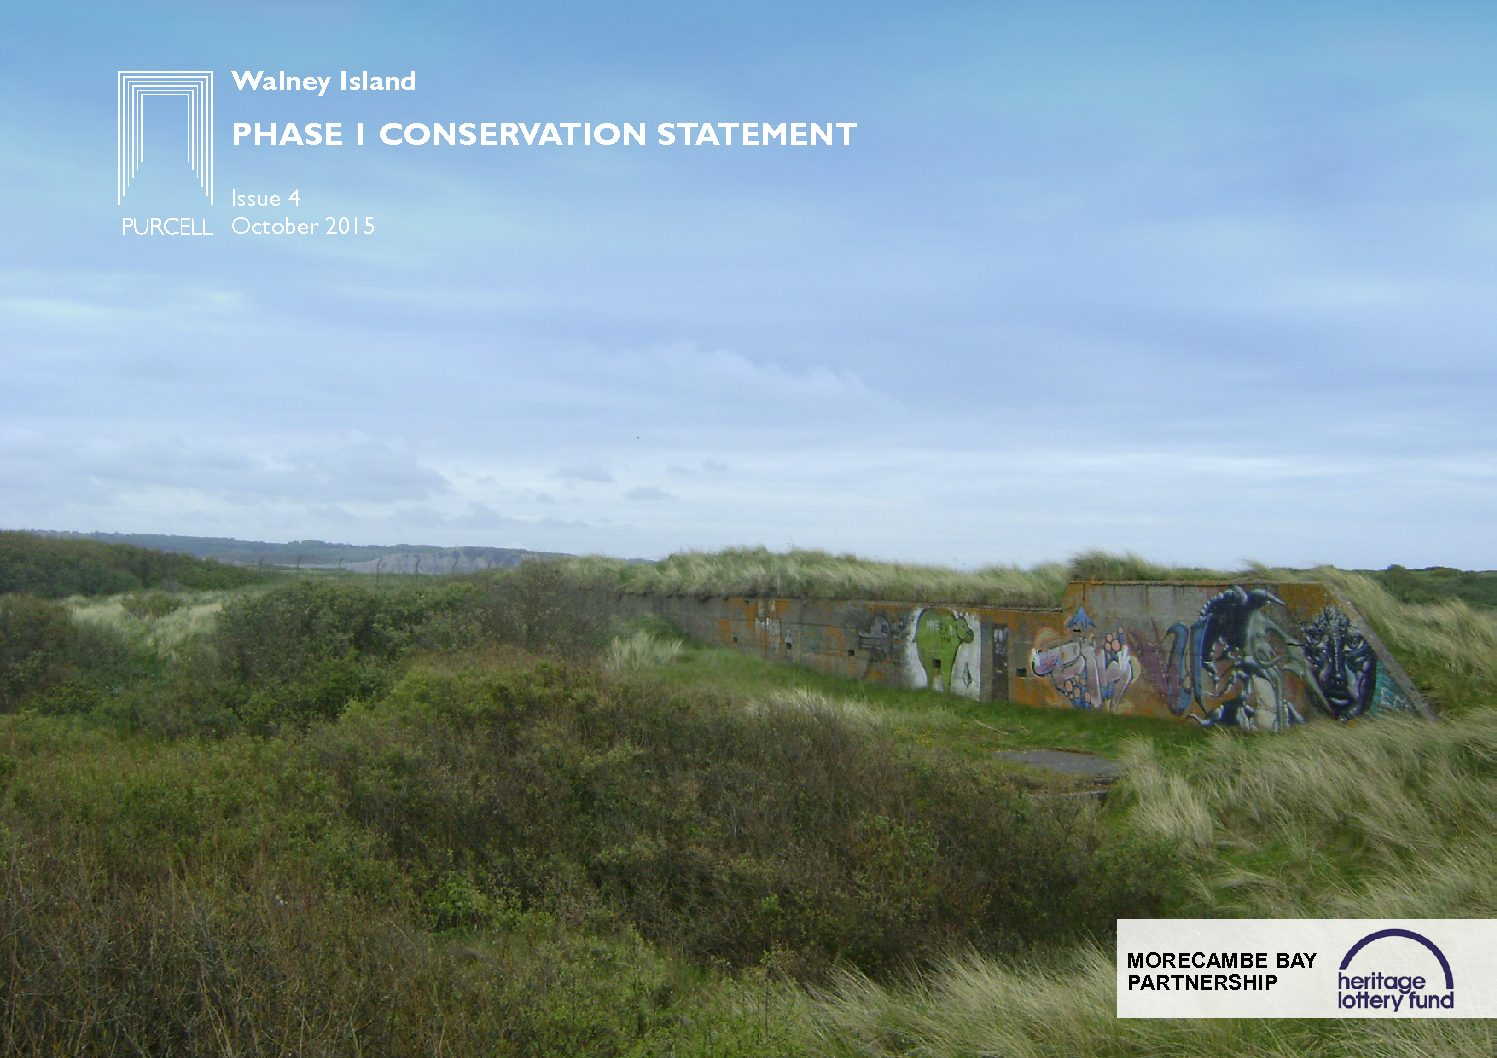 Walney Island Phase 1 Conservation Statement